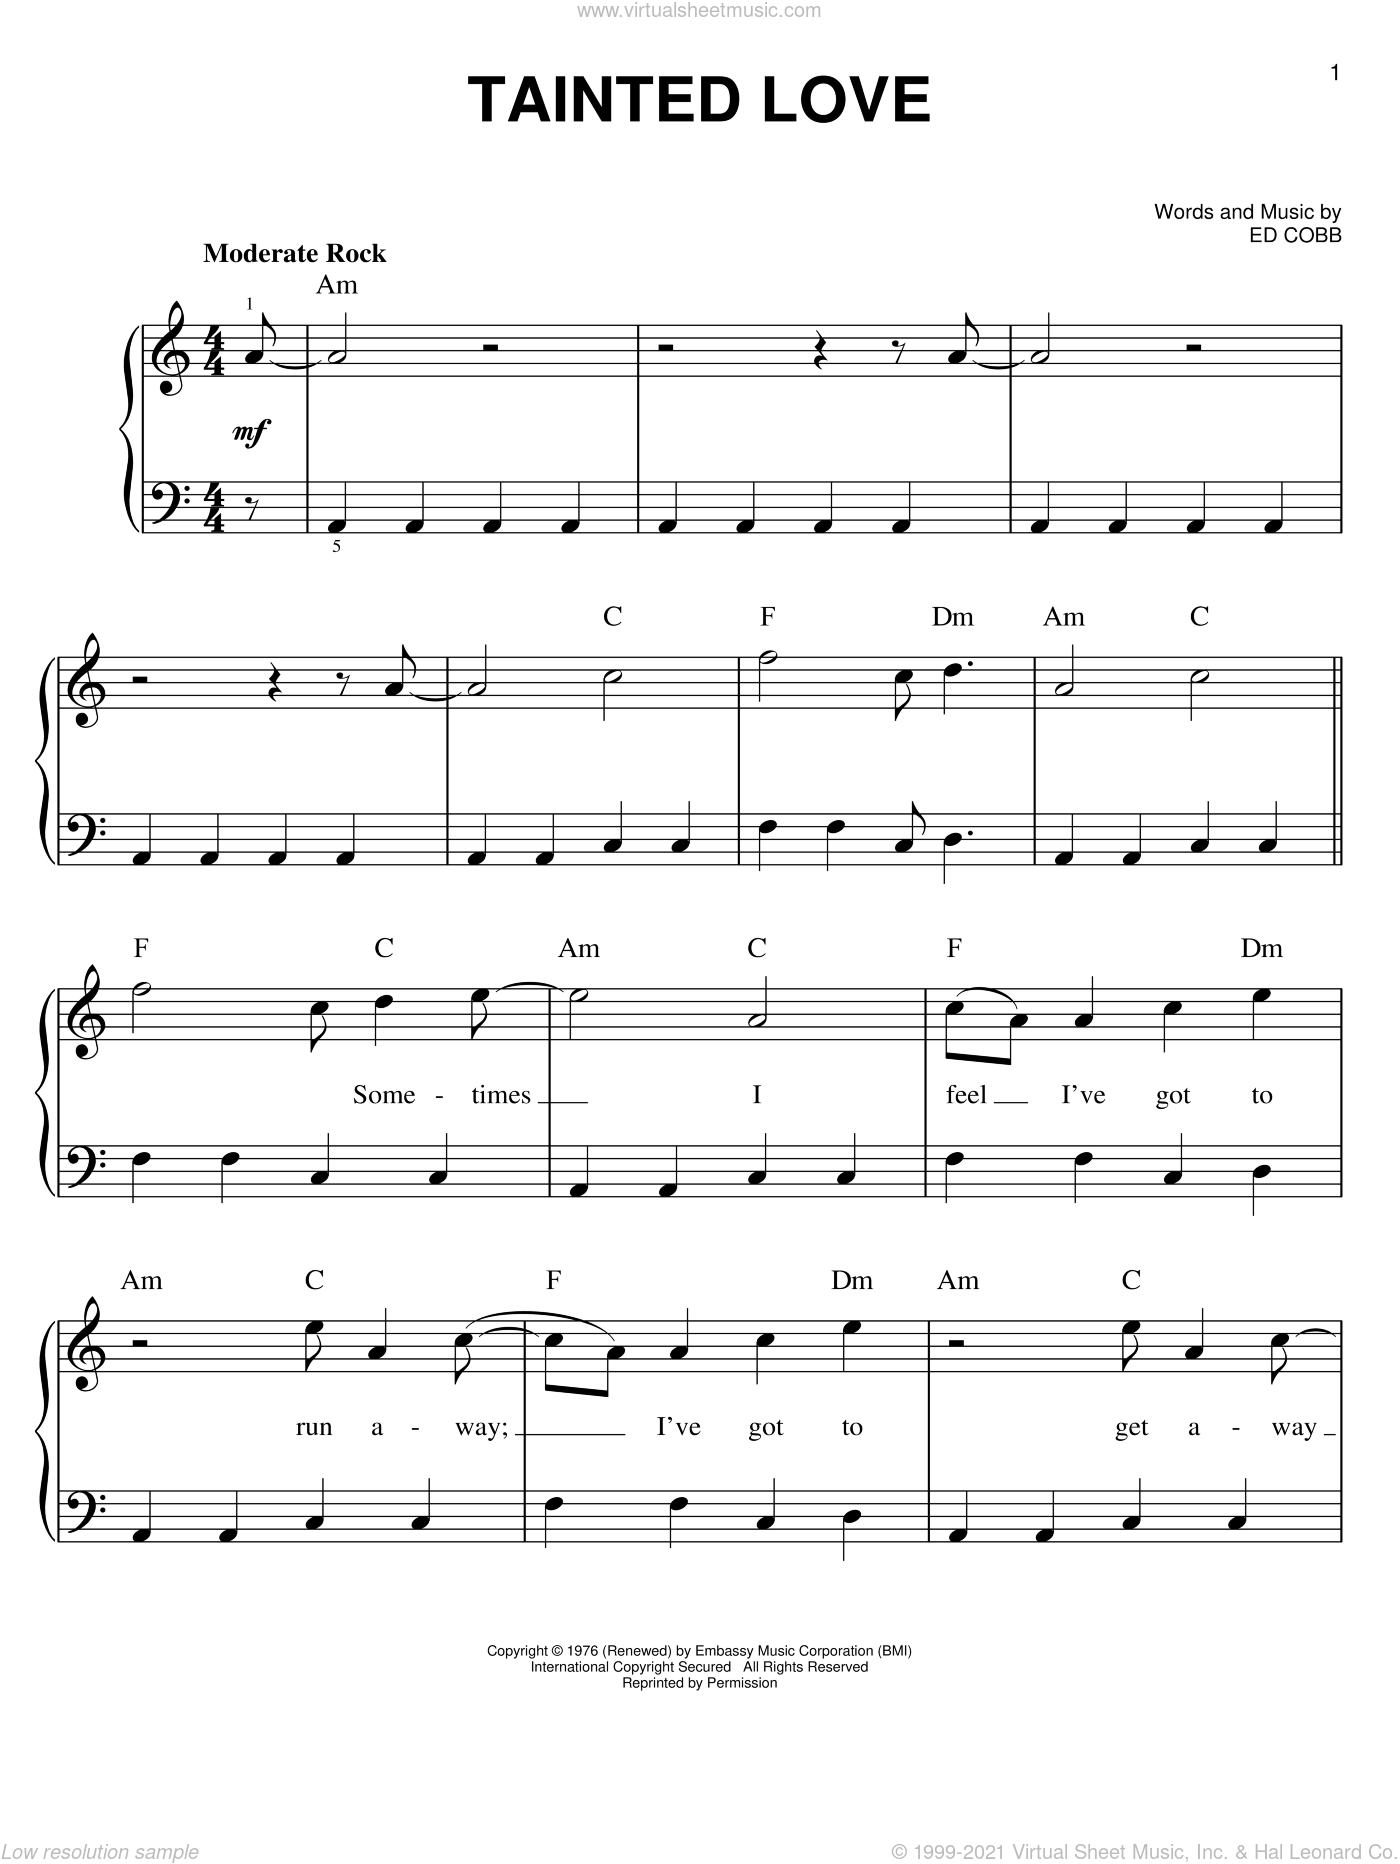 Tainted Love sheet music for piano solo by Ed Cobb